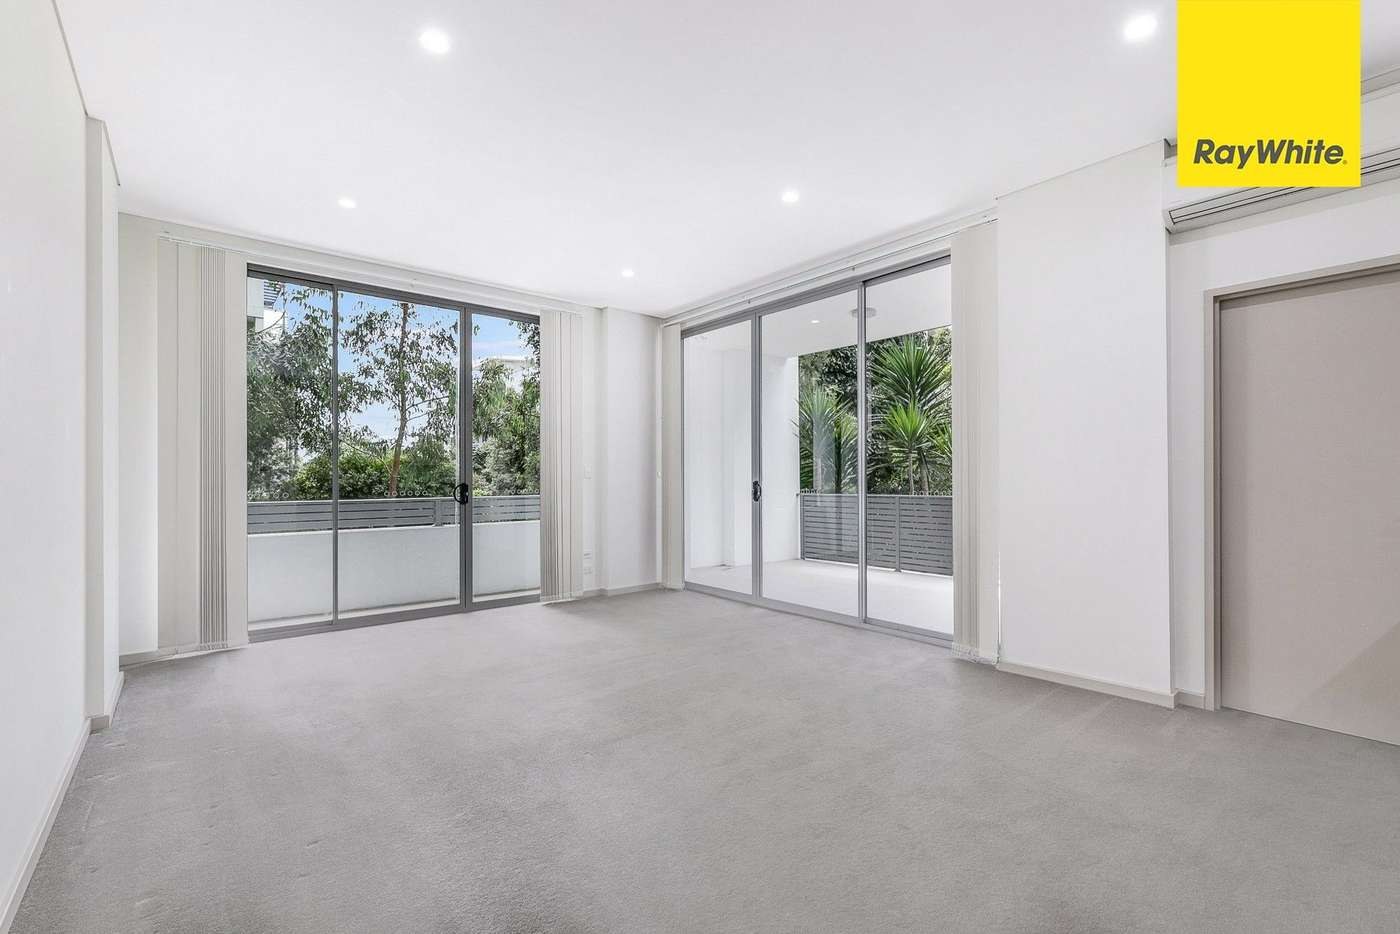 Main view of Homely apartment listing, 5/54-56 Keeler Street, Carlingford NSW 2118